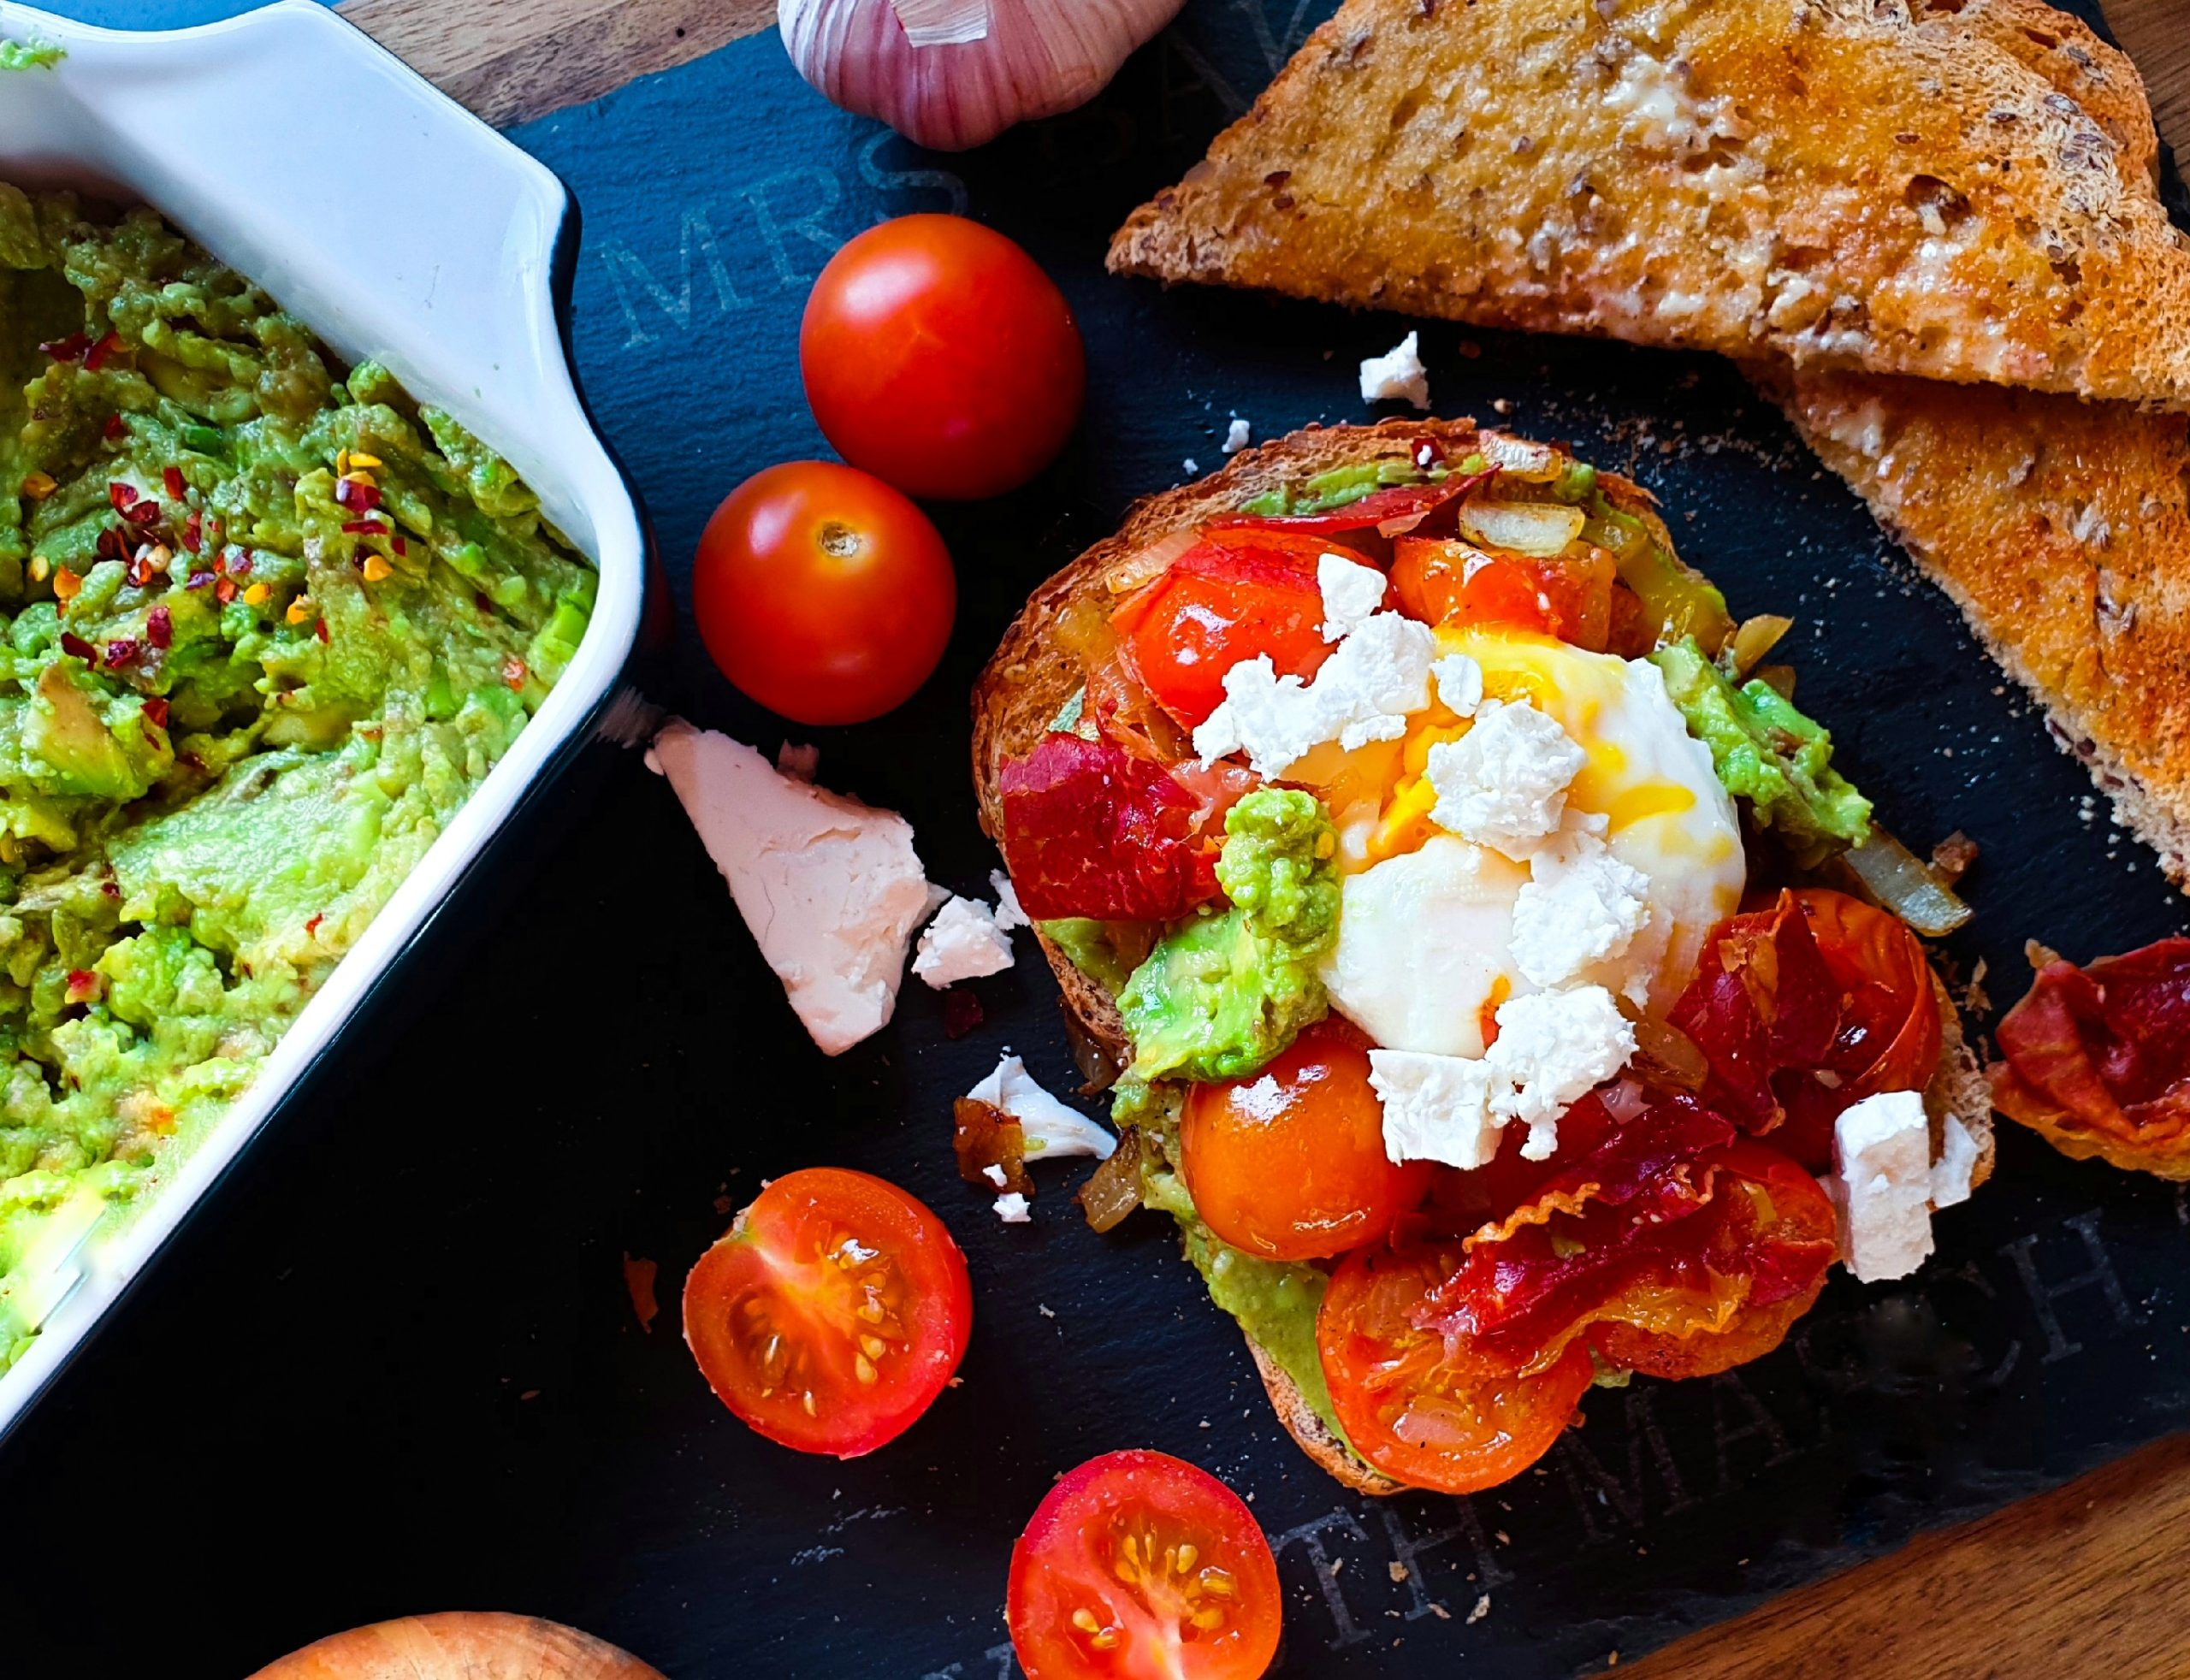 Spiced avocado smash with bacon, egg and feta